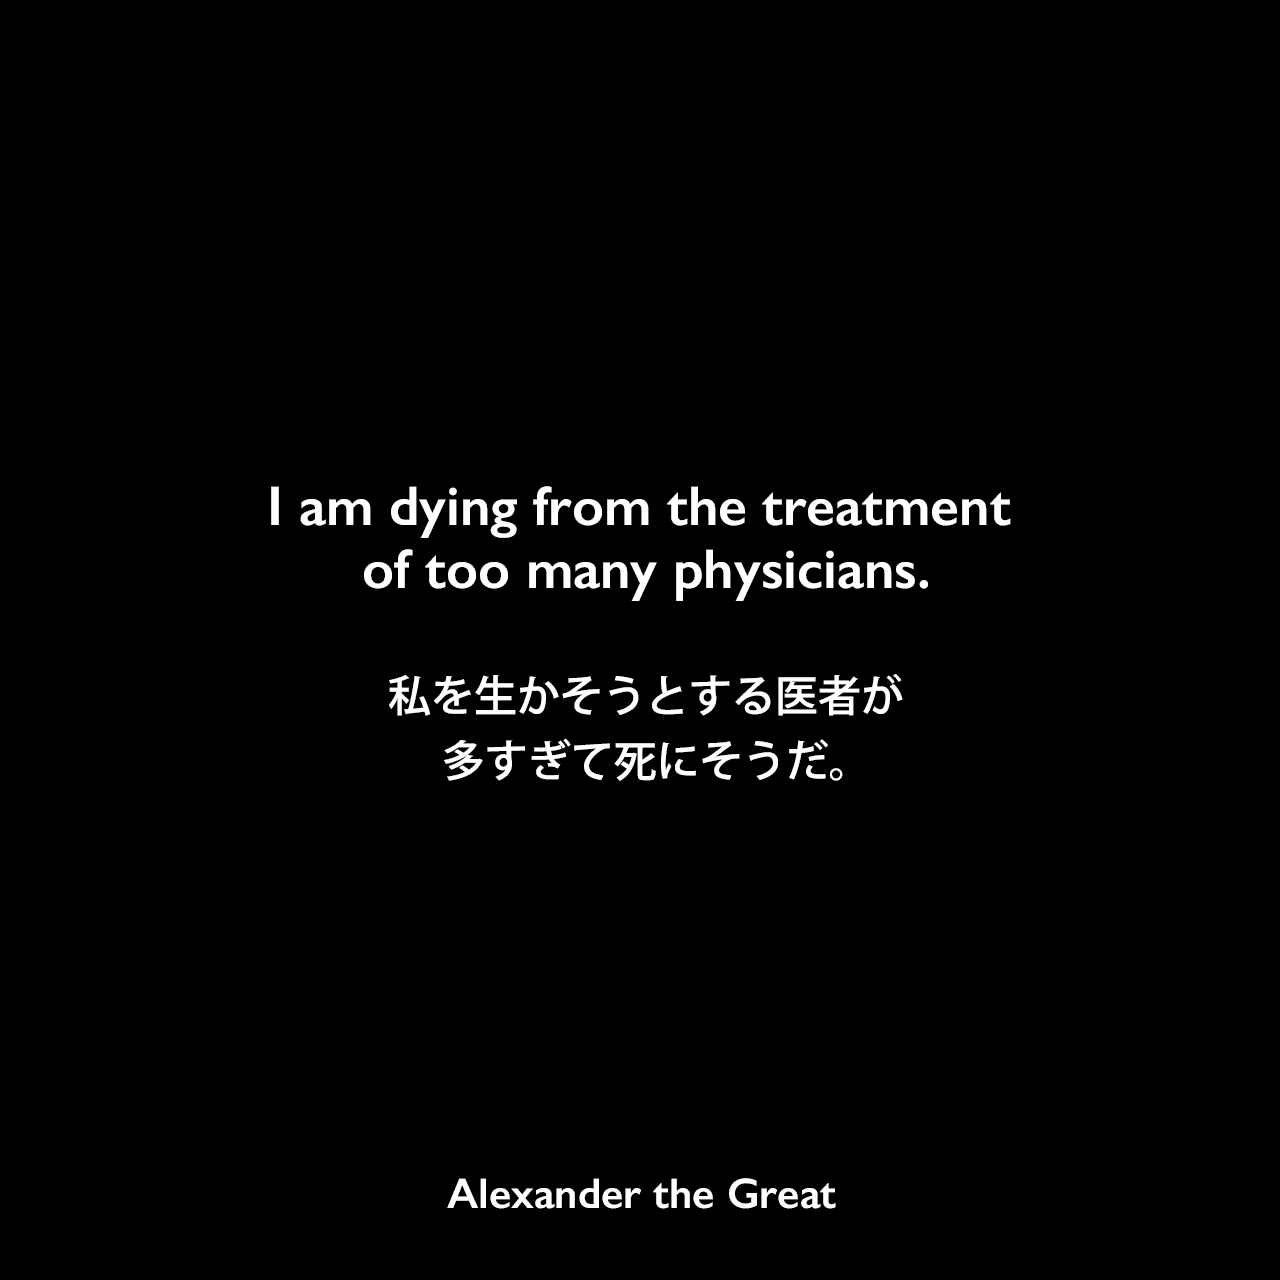 I am dying from the treatment of too many physicians.私を生かそうとする医者が多すぎて死にそうだ。Alexander the Great